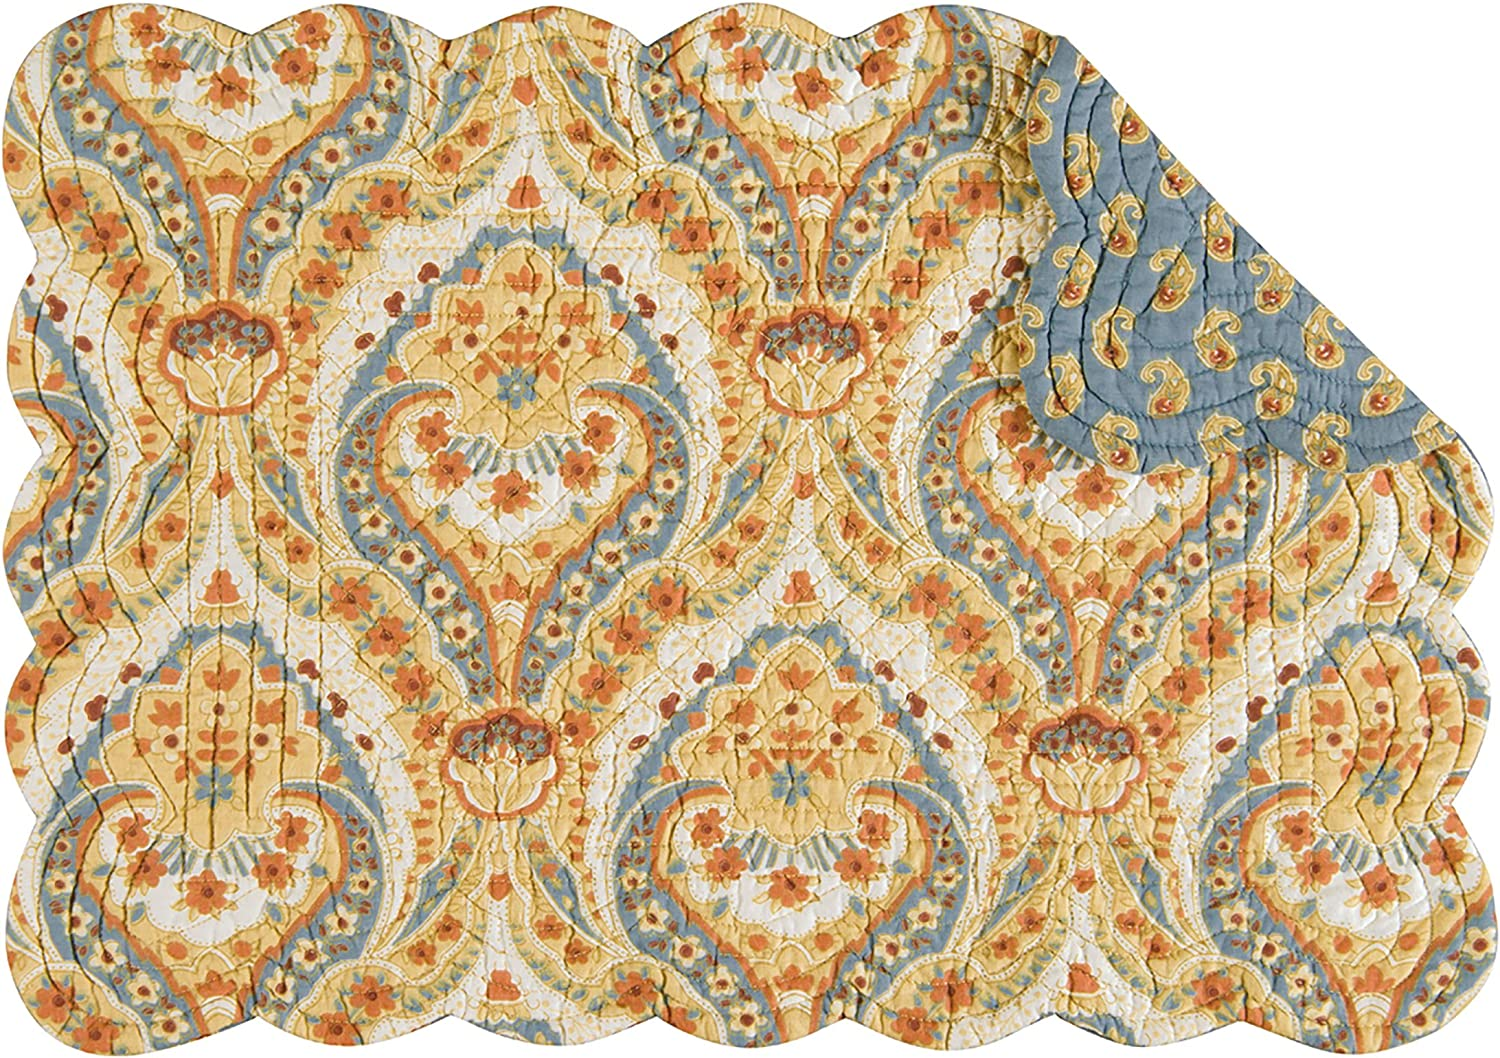 Amazon Com C F Home Mandalay Tan Brown Blue Damask Cotton Quilted Oblong Rectangular Cotton Quilted Cotton Placemat Set Of 6 Rectangular Placemat Set Of 6 Natural Home Kitchen